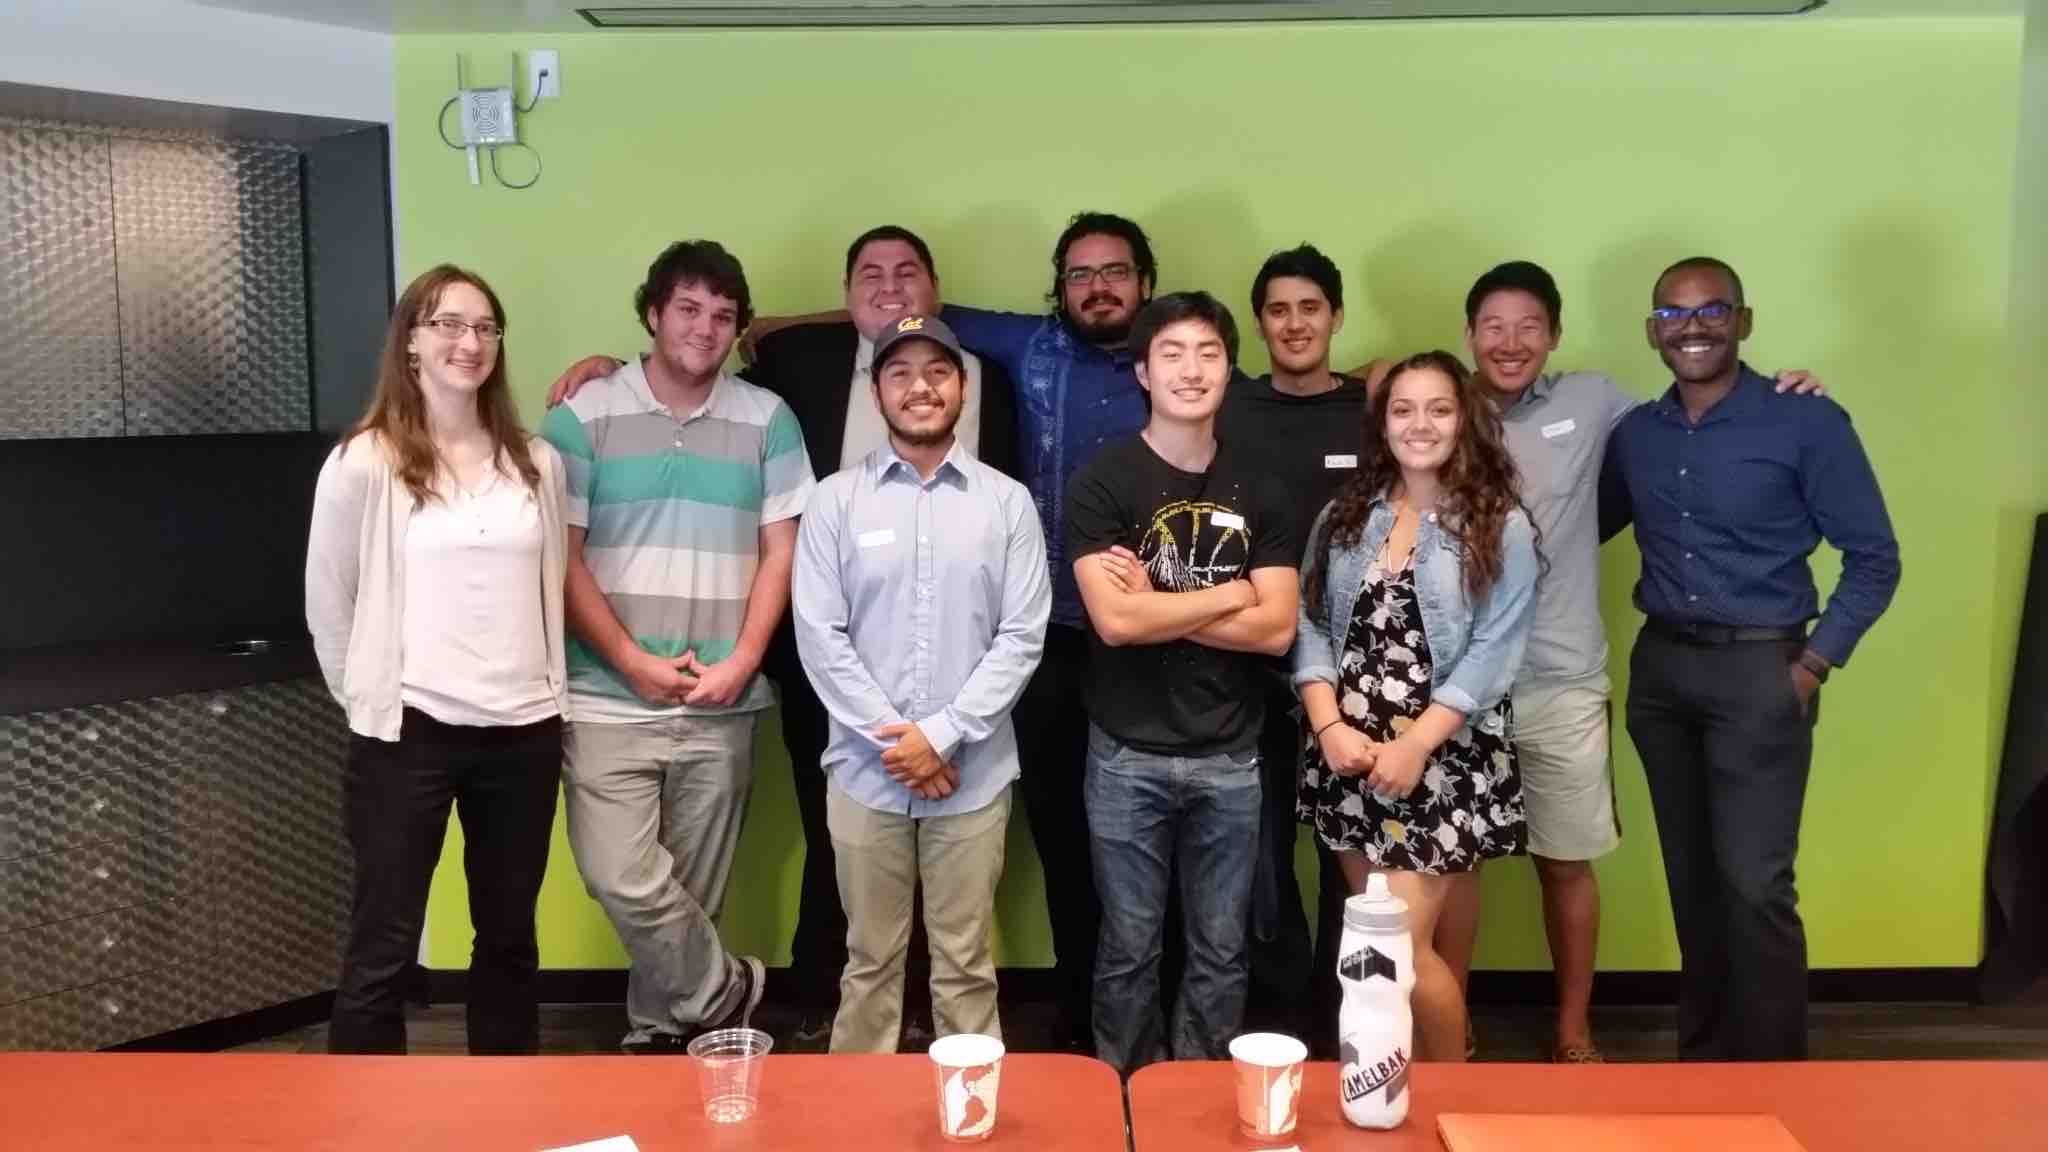 Stieber lab the first pomona undergraduate inorganic chemistry symposium 2016 at cal poly pomona with the ball group from pomona college publicscrutiny Images